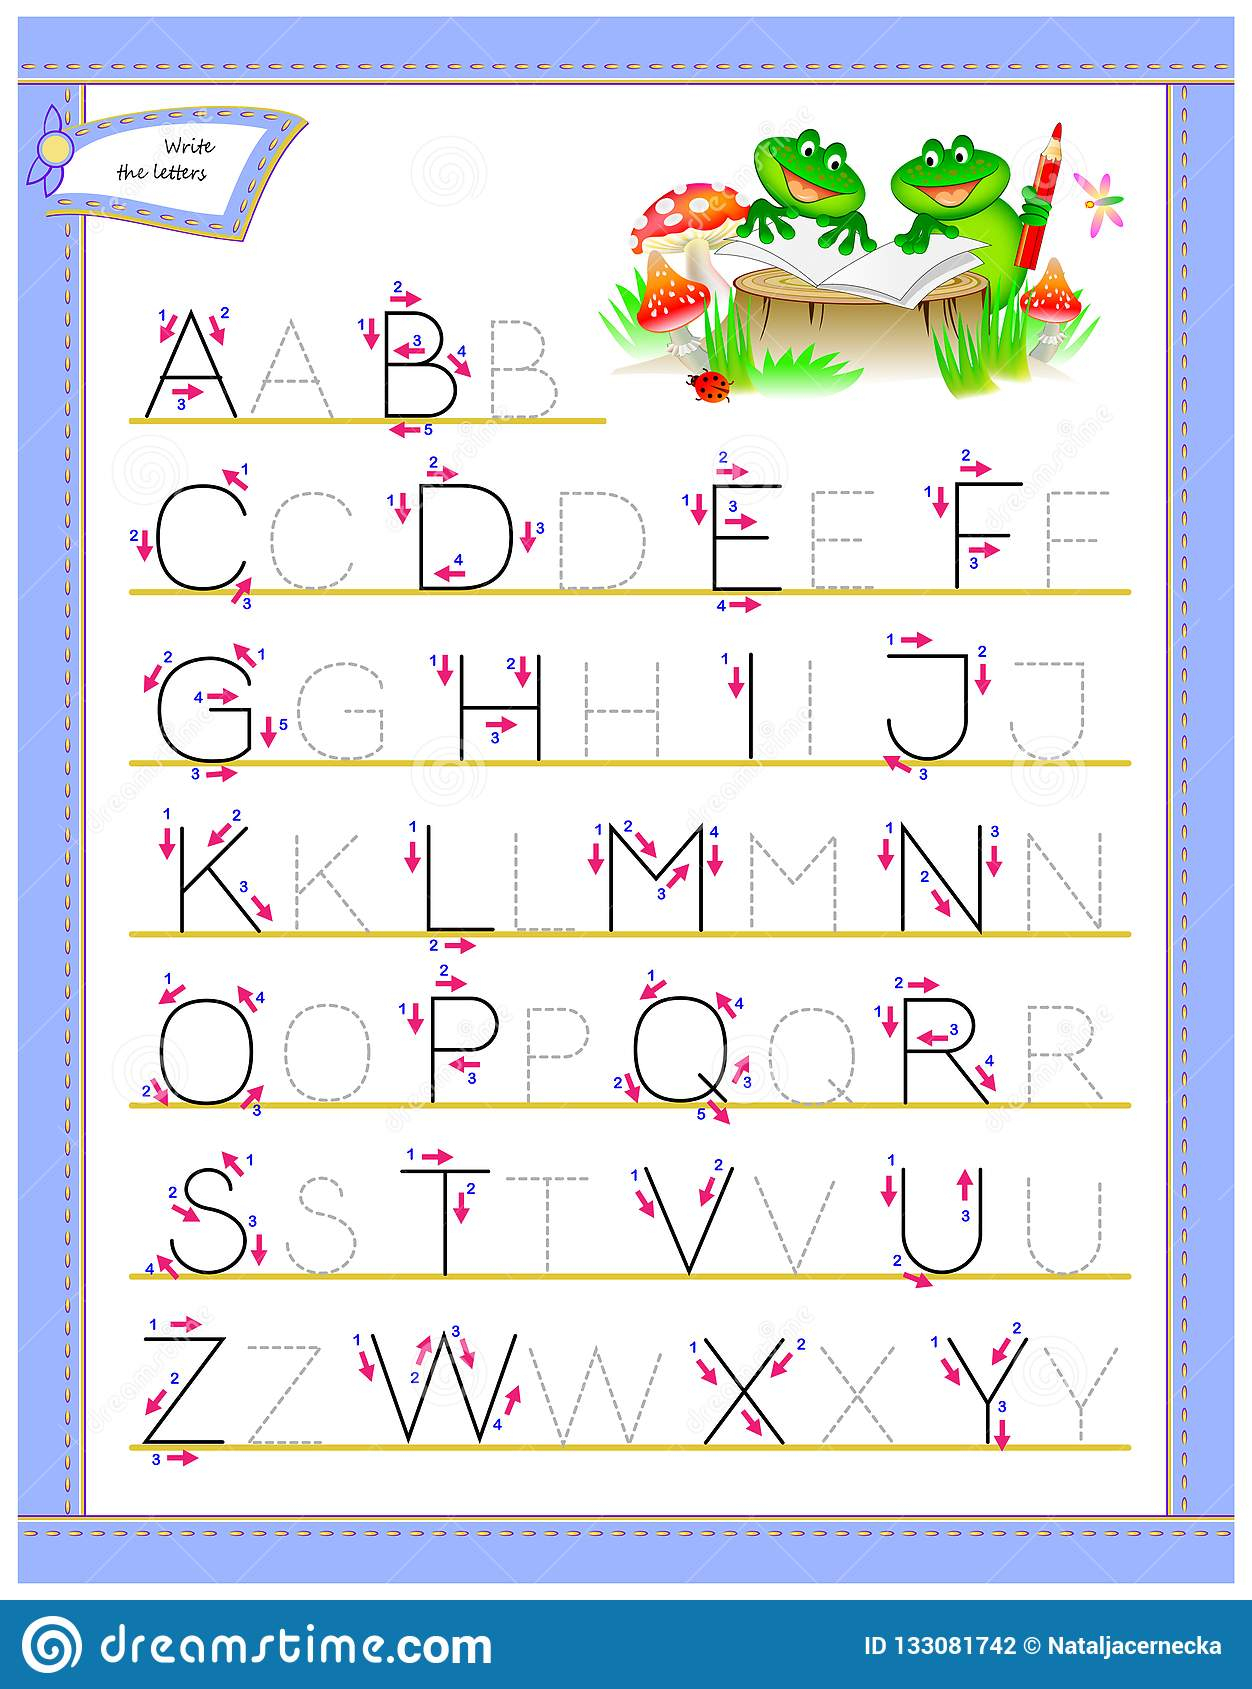 Tracing Abc Letters For Study English Alphabet. Worksheet intended for Alphabet Worksheets Toddler